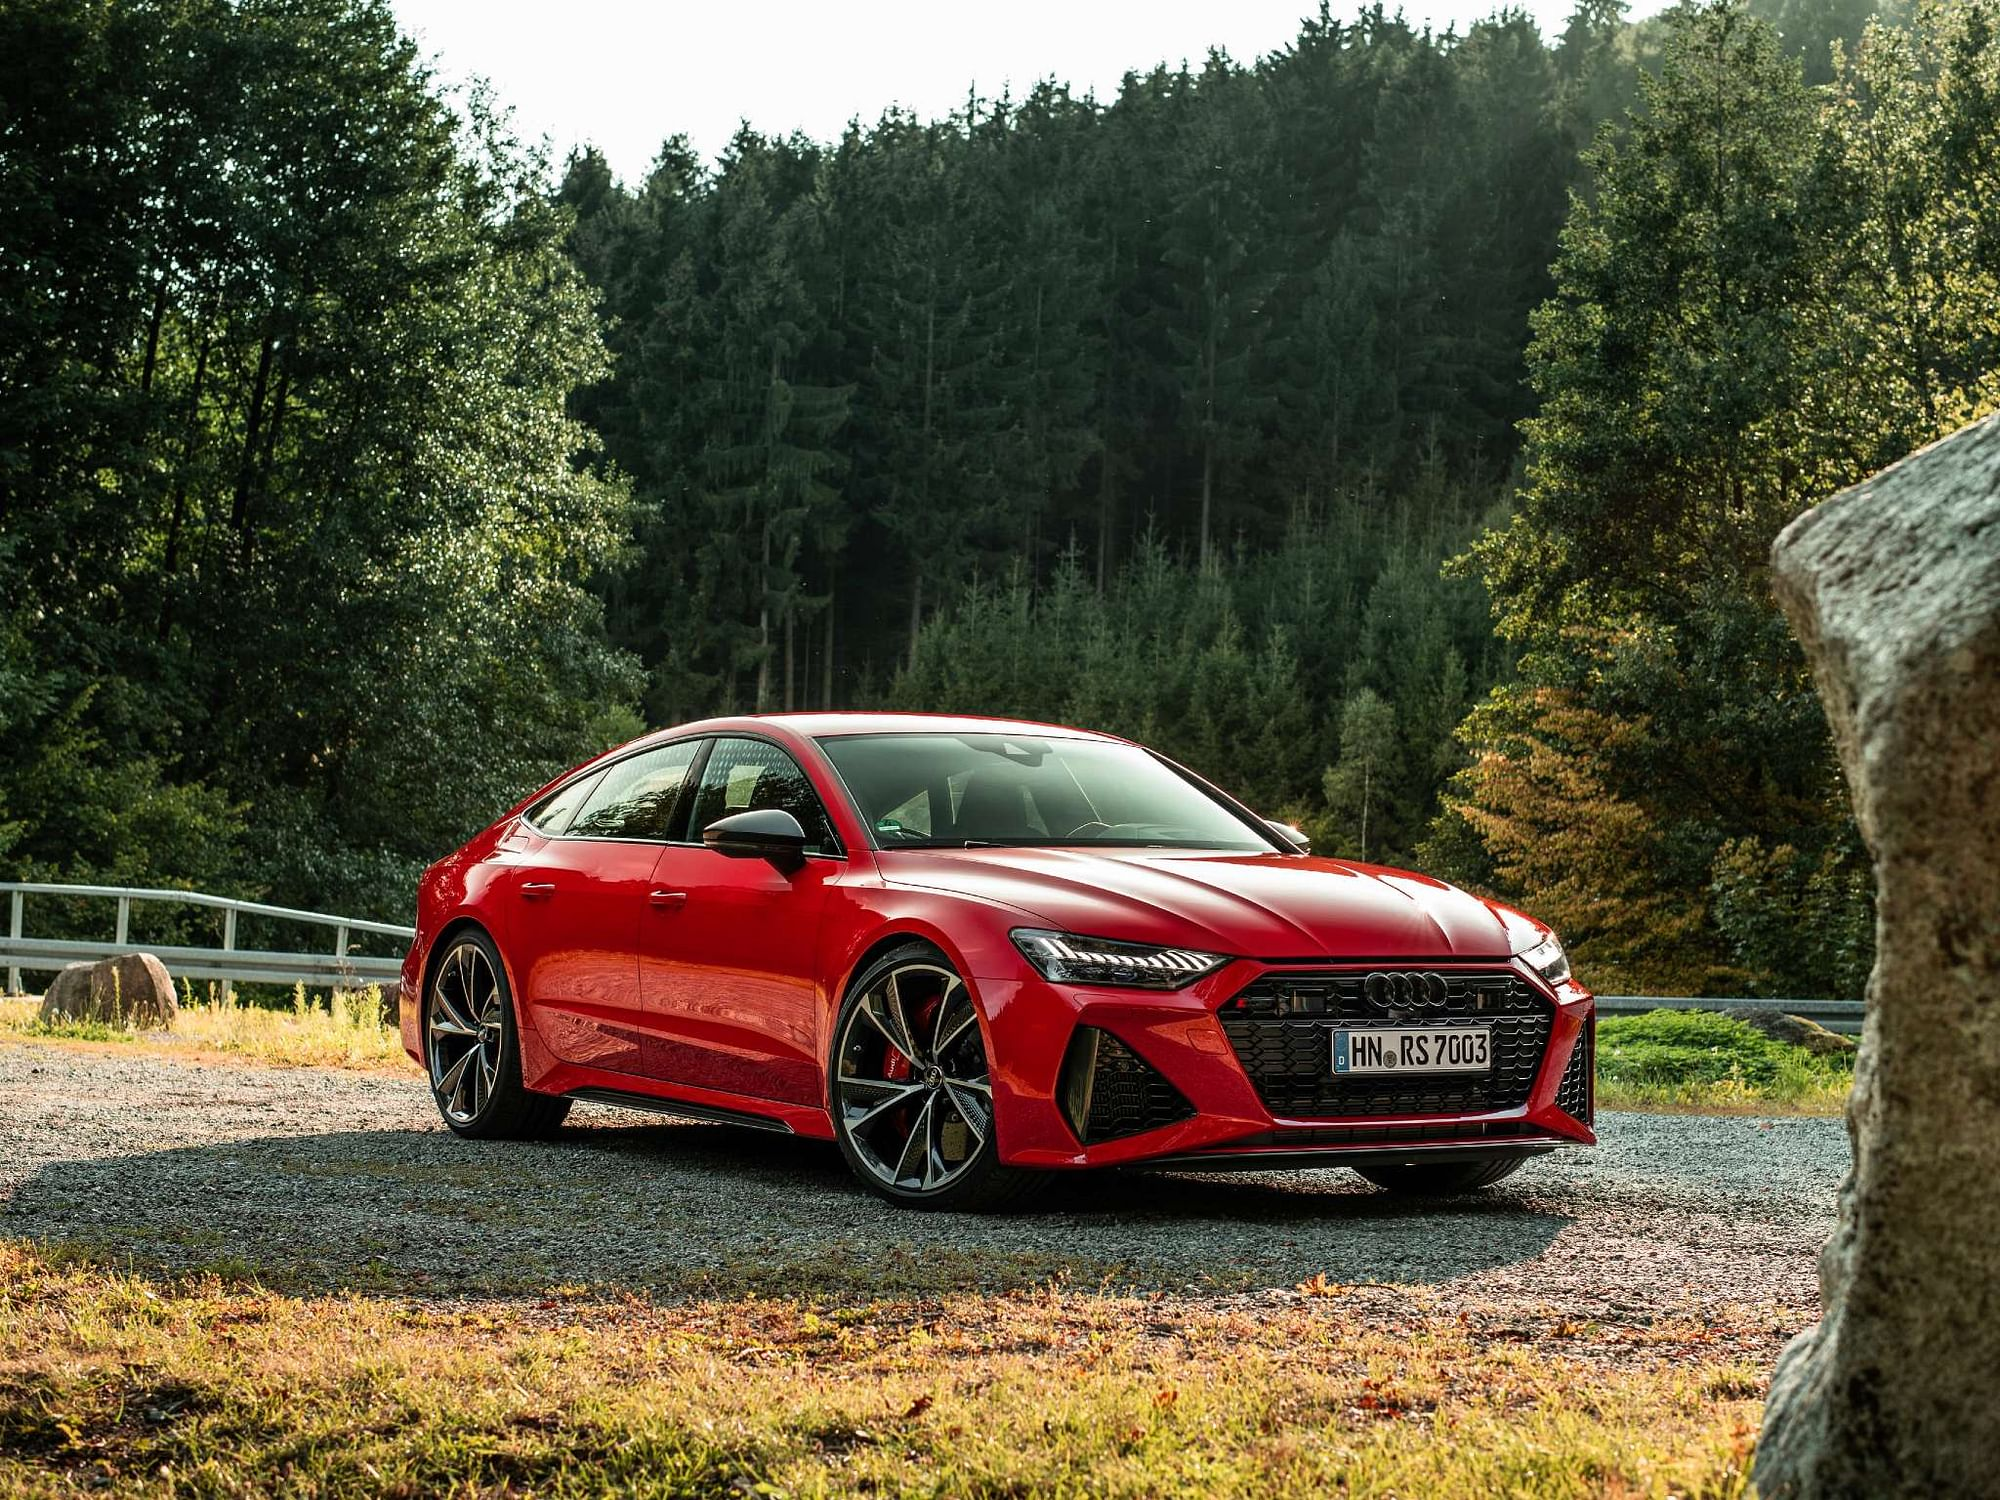 2020 Audi Rs7 Sportsback To Be Launched In India Soon